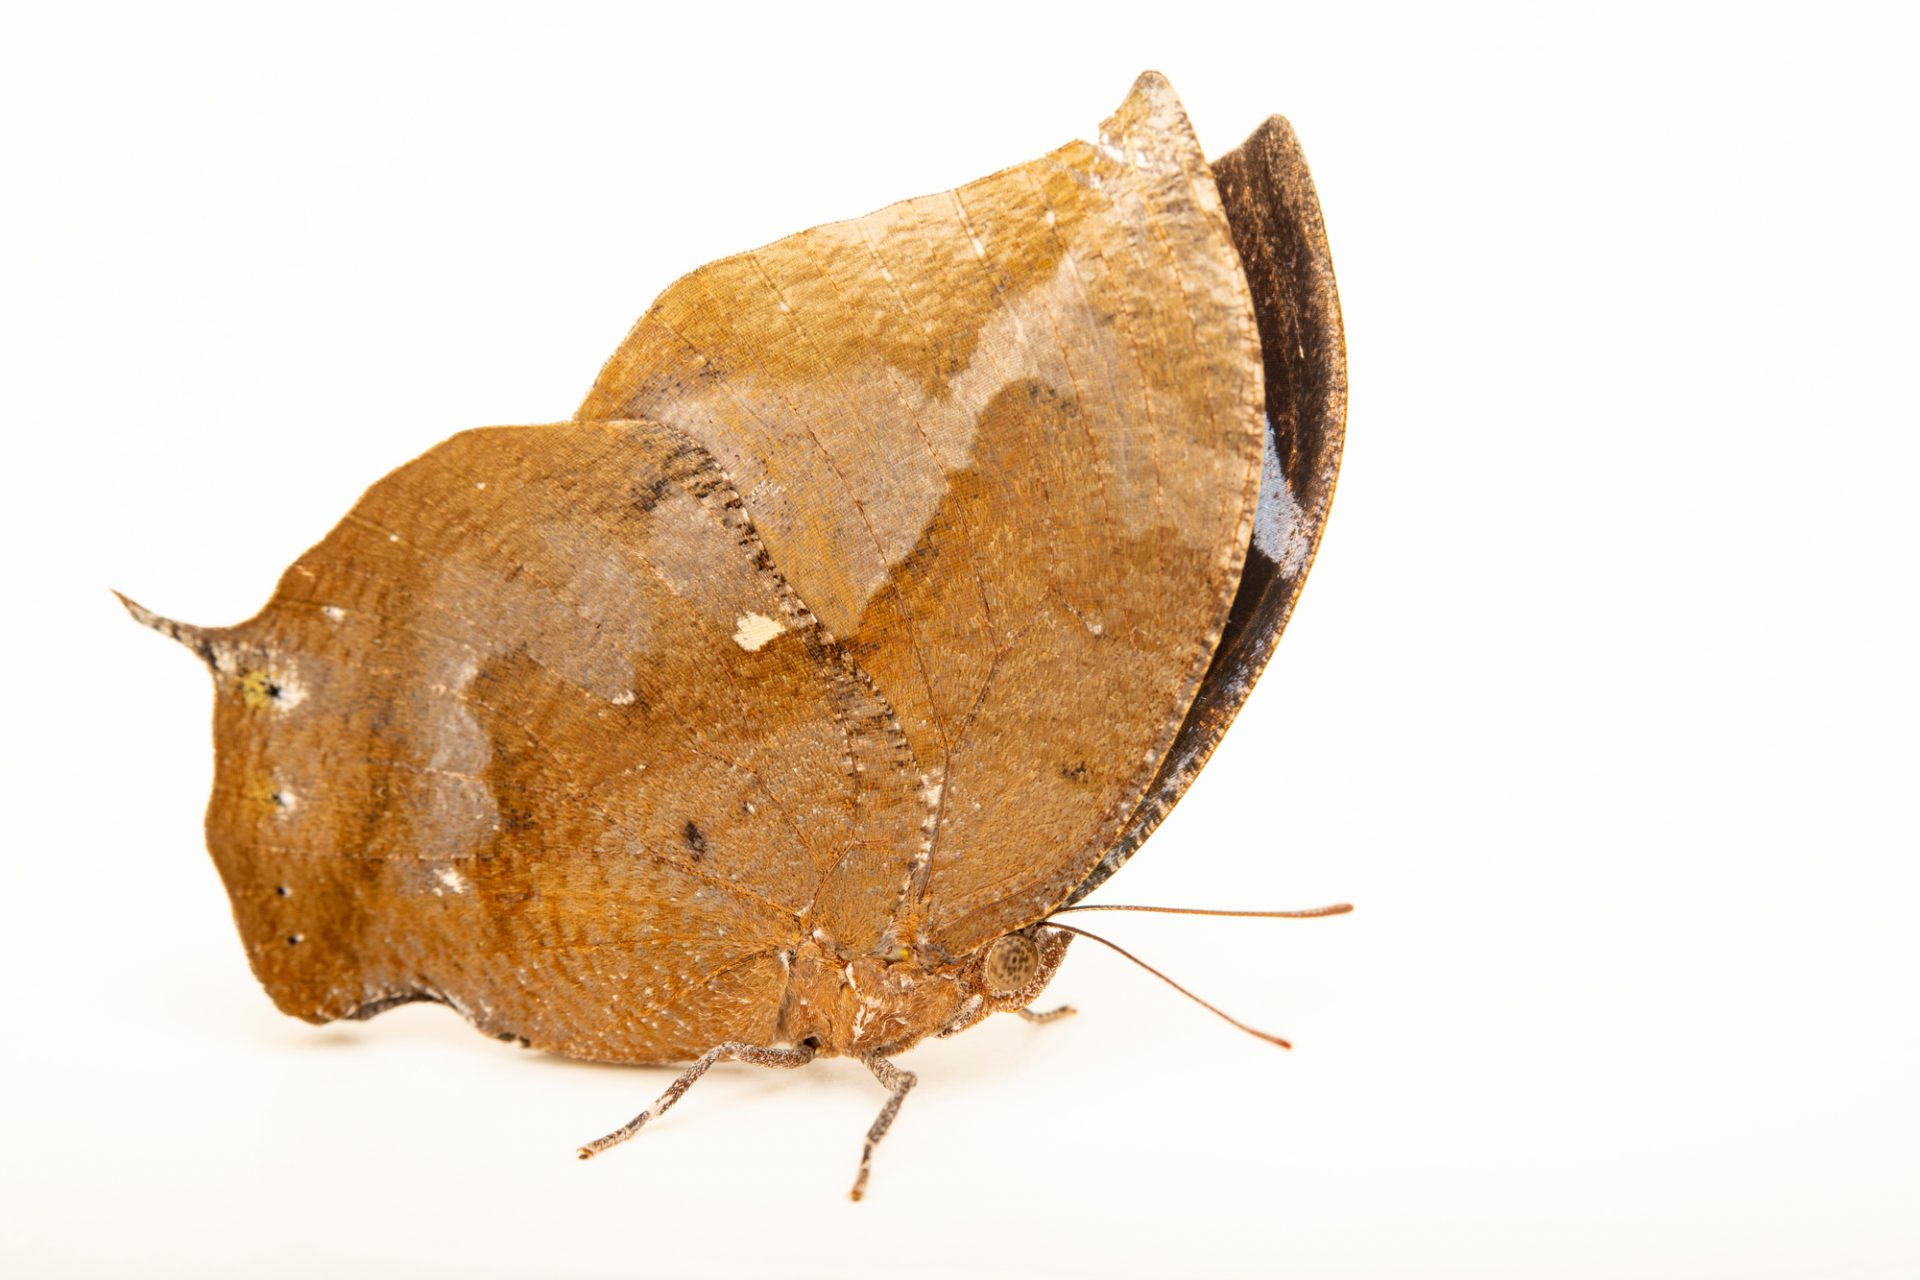 Photo: A Forrer's leafwing (Memphis forreri) at the Omaha Zoo.